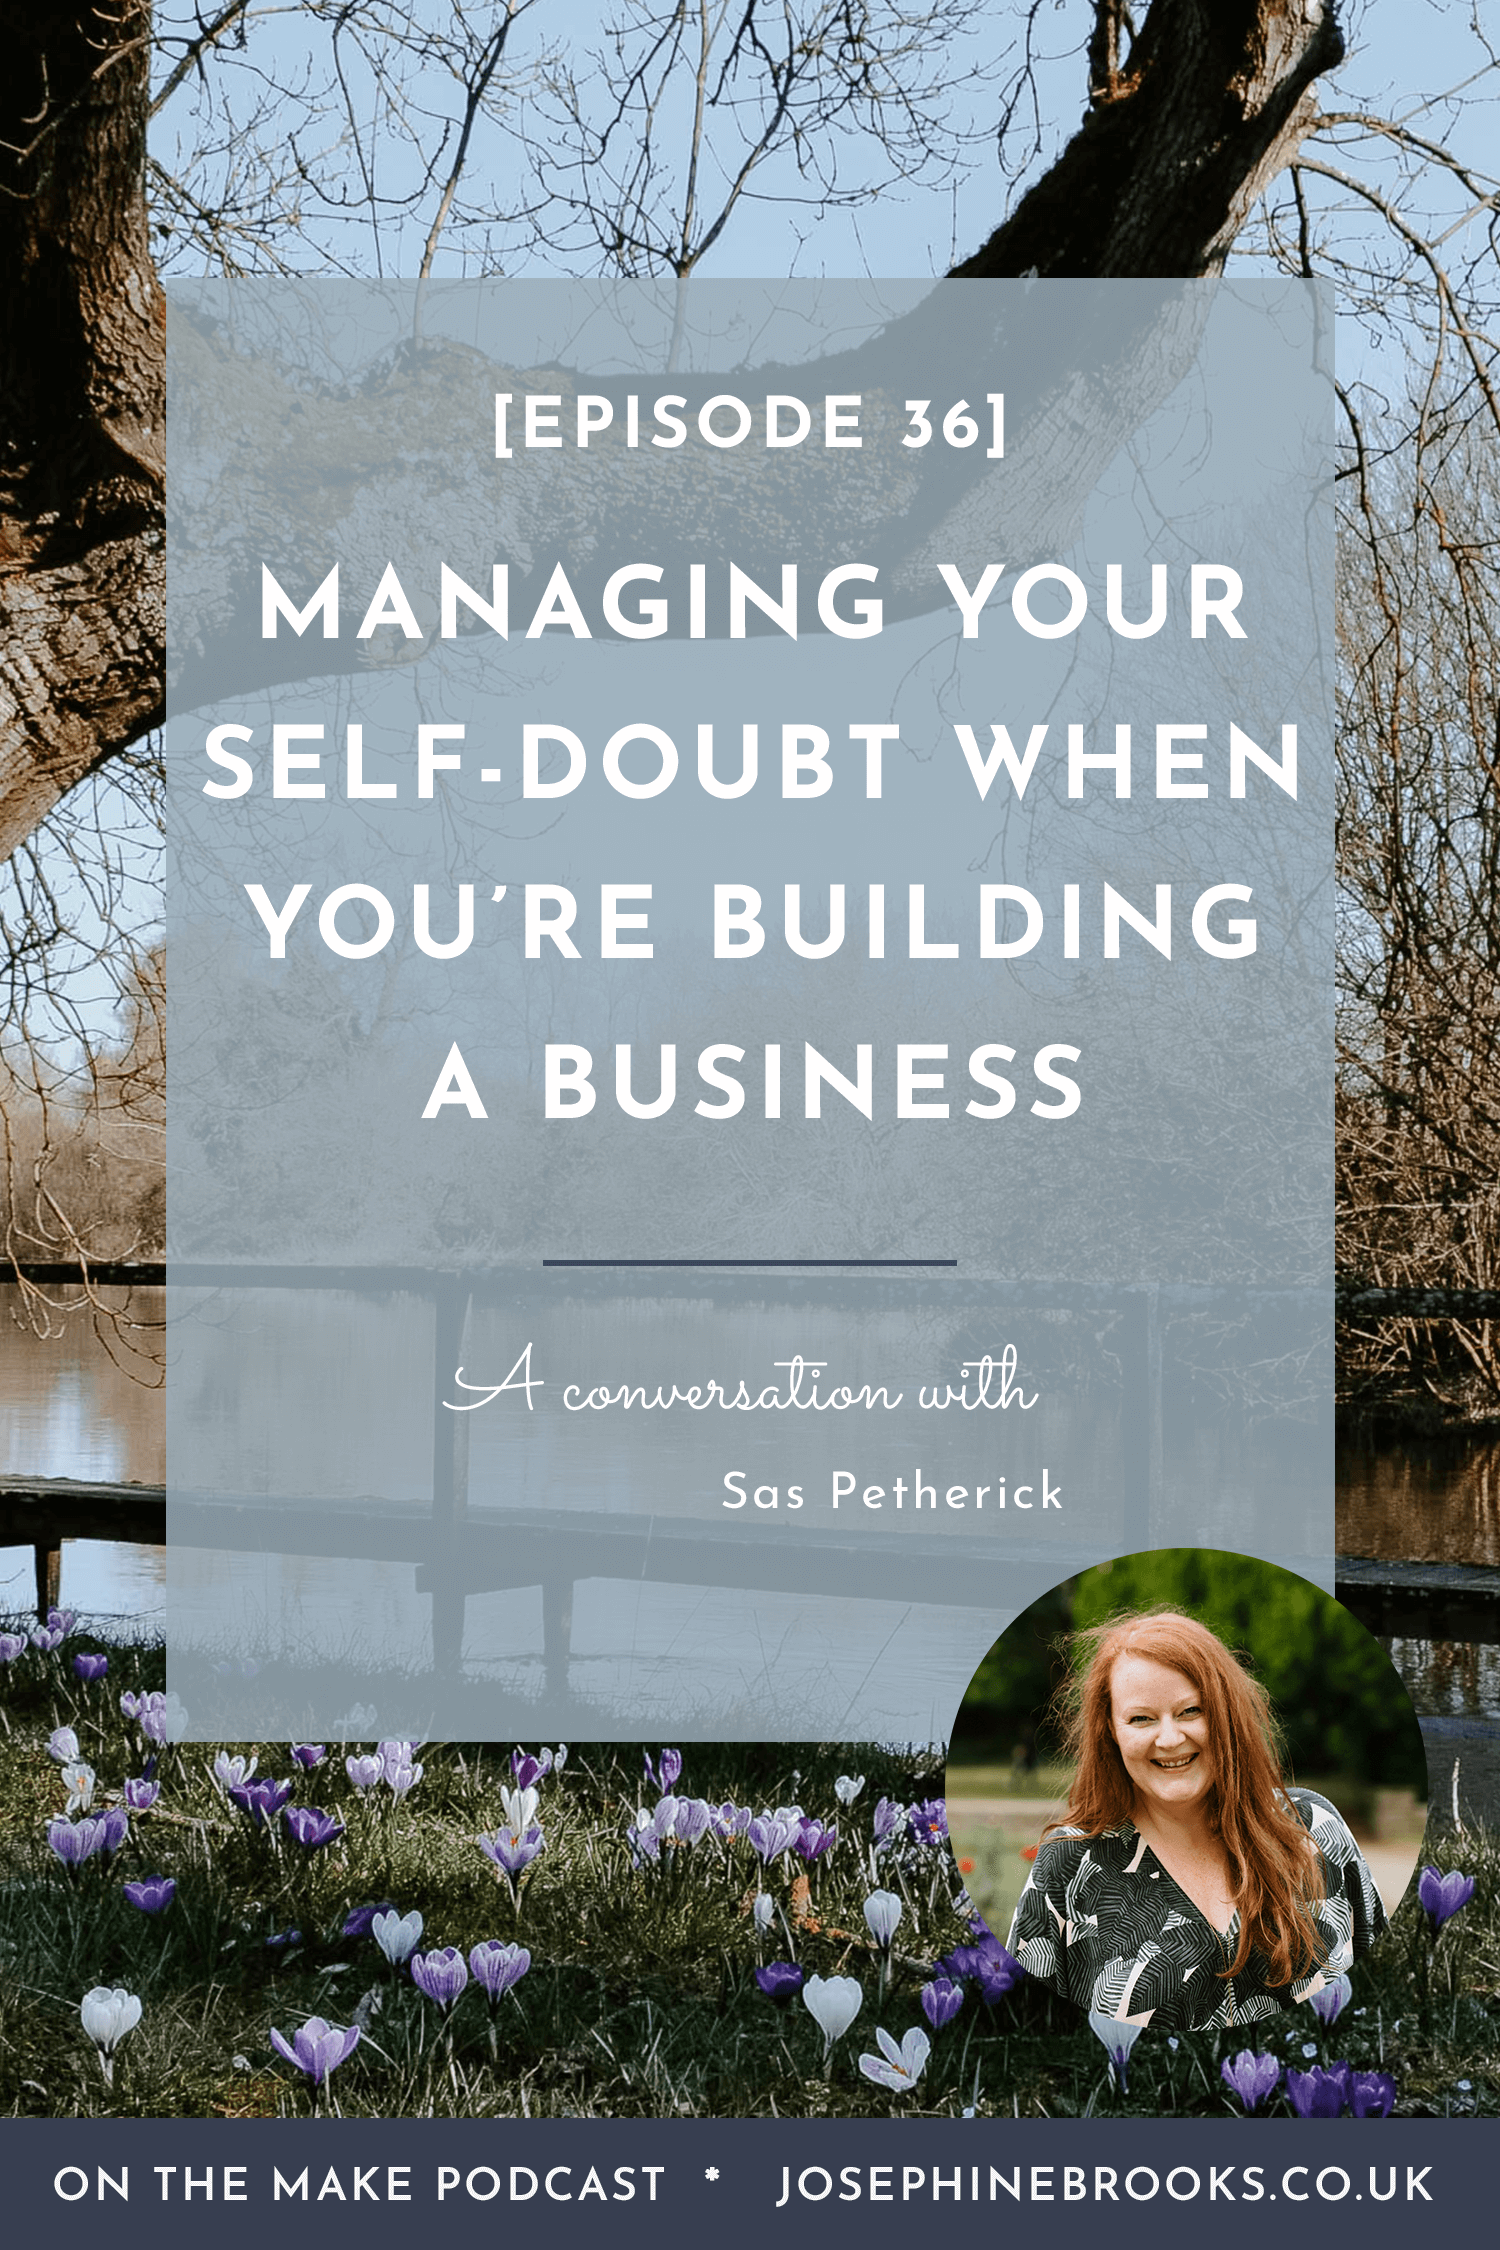 Managing your self-doubt when you're building a business | On the Make podcast hosted by Josephine Brooks, episode 36 with Sas Petherick